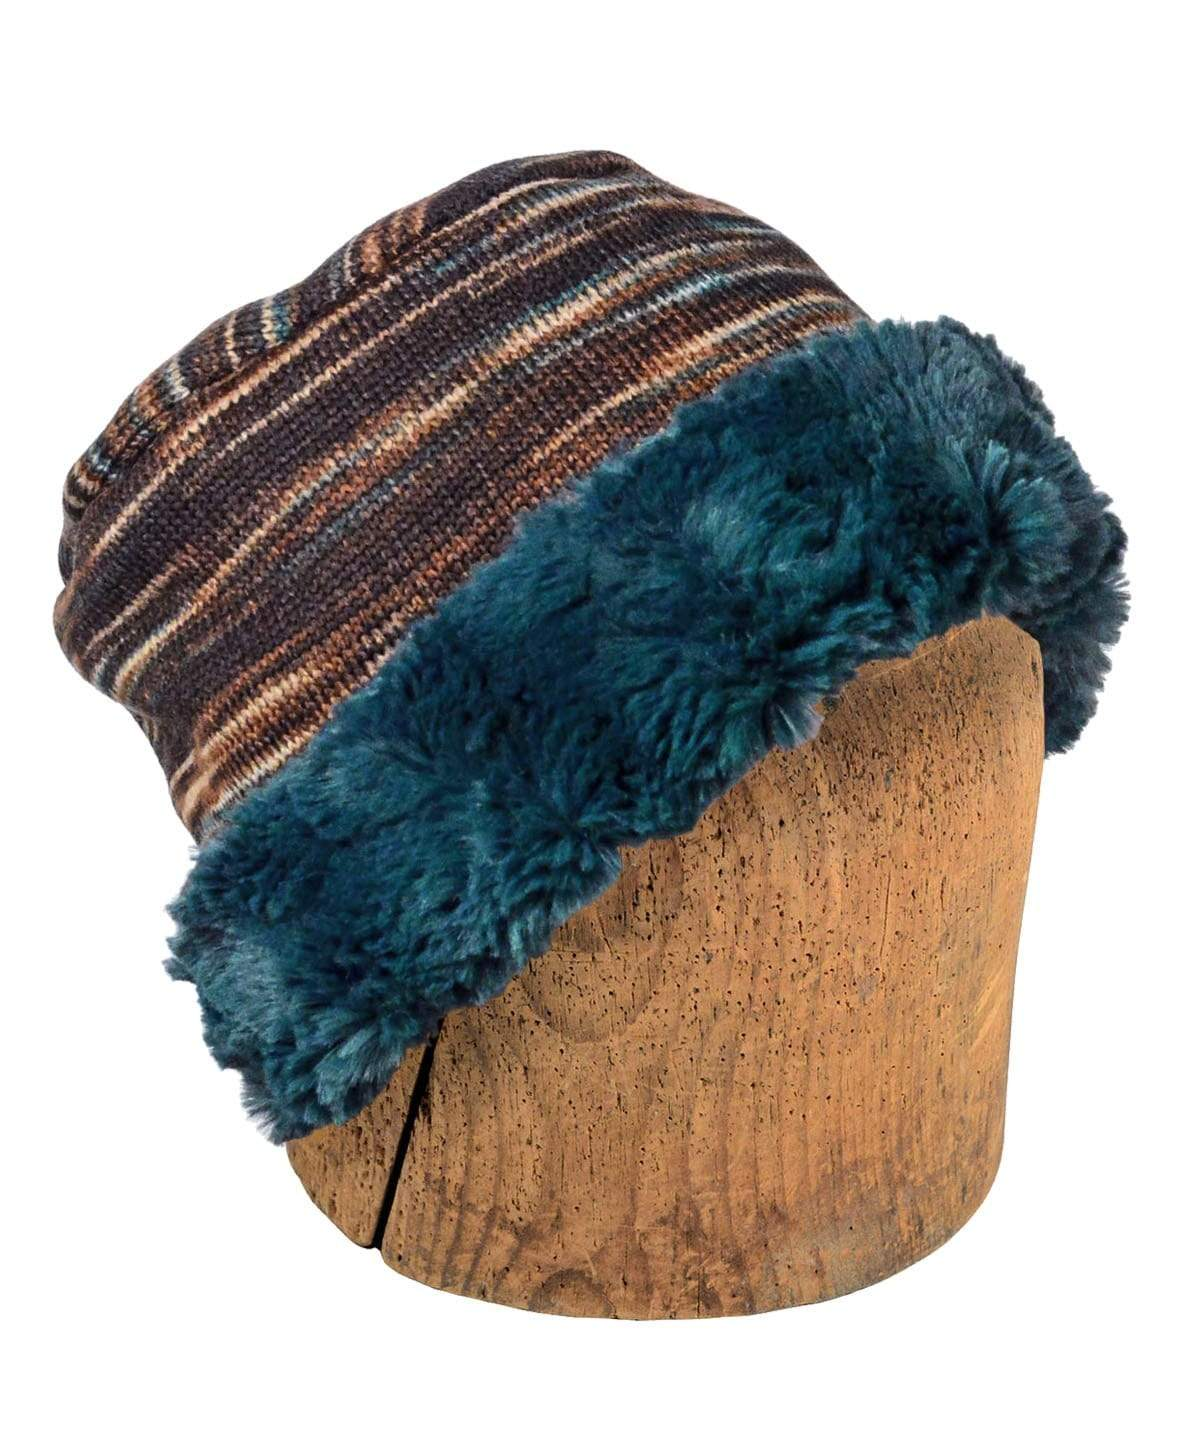 Men's Cuffed Pillbox, Reversible (Two-Tone) - Sweet Stripes in English Toffee with Assorted Faux Fur